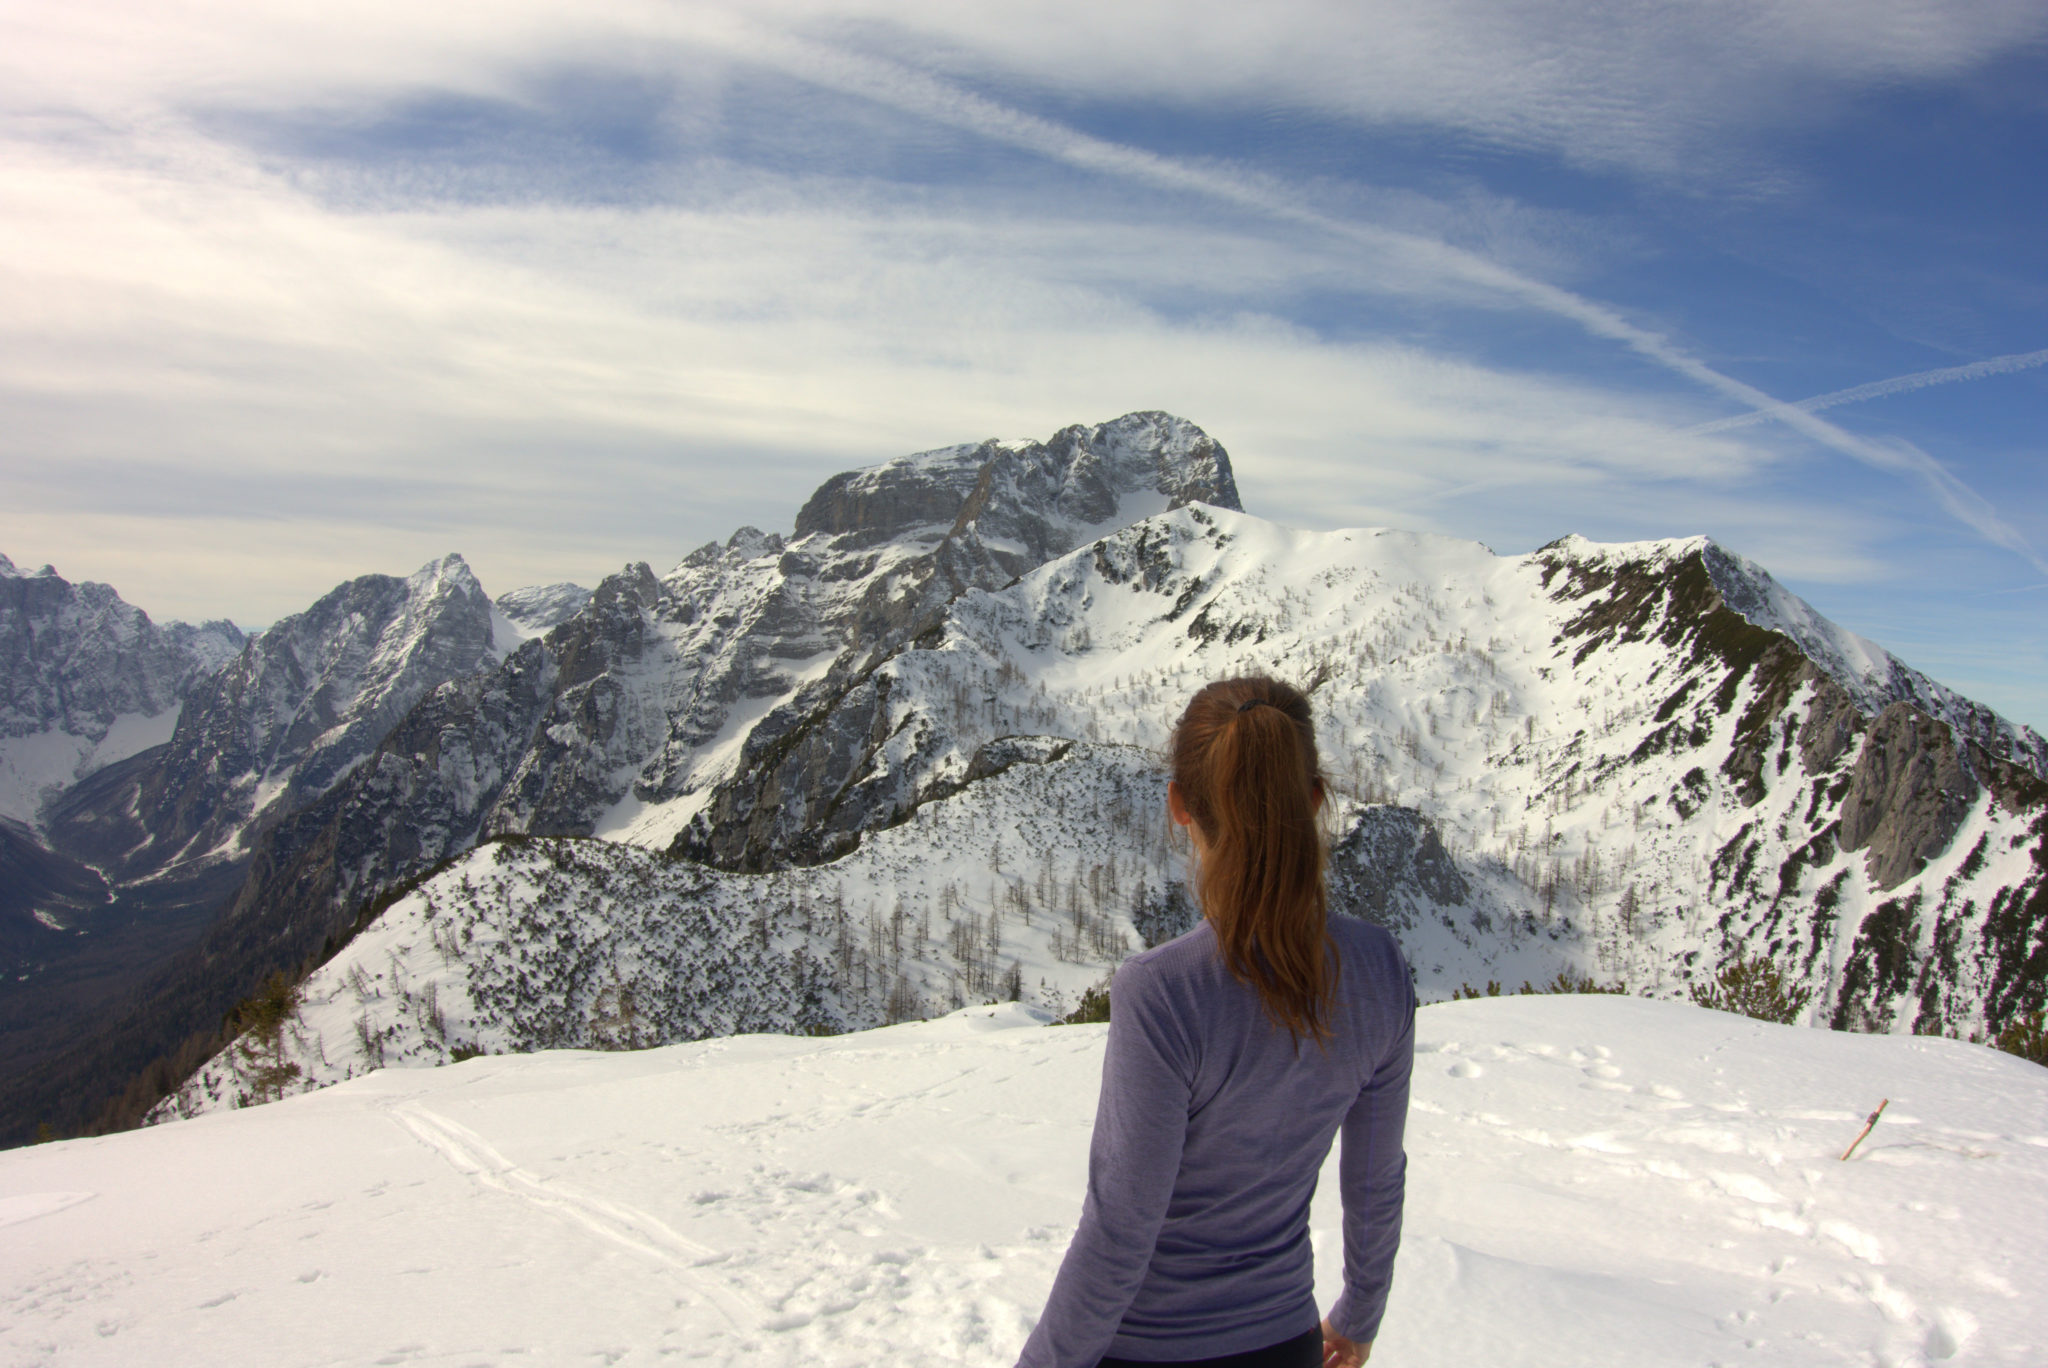 Soaking up cinematic views of the tallest peaks of the Julian Alps, Slovenia